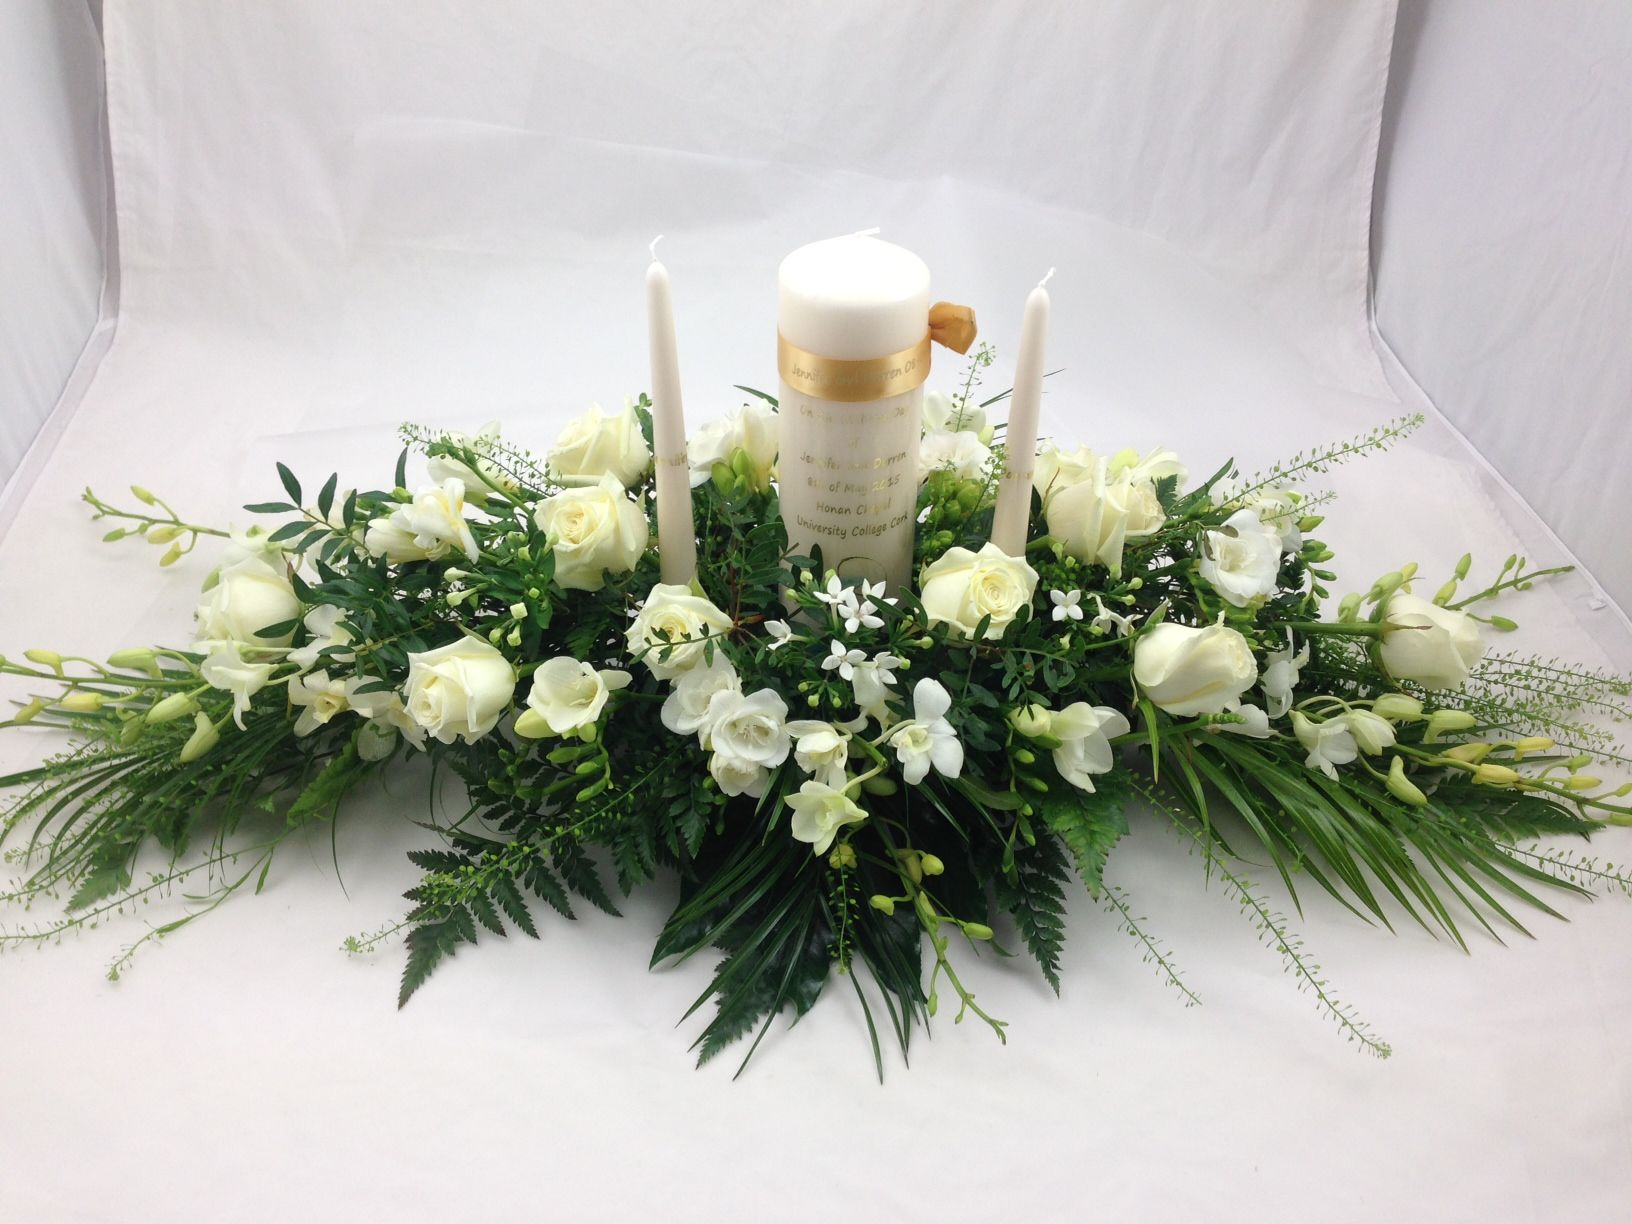 Wedding candle arrangement unity candle arrangement church wedding flowers